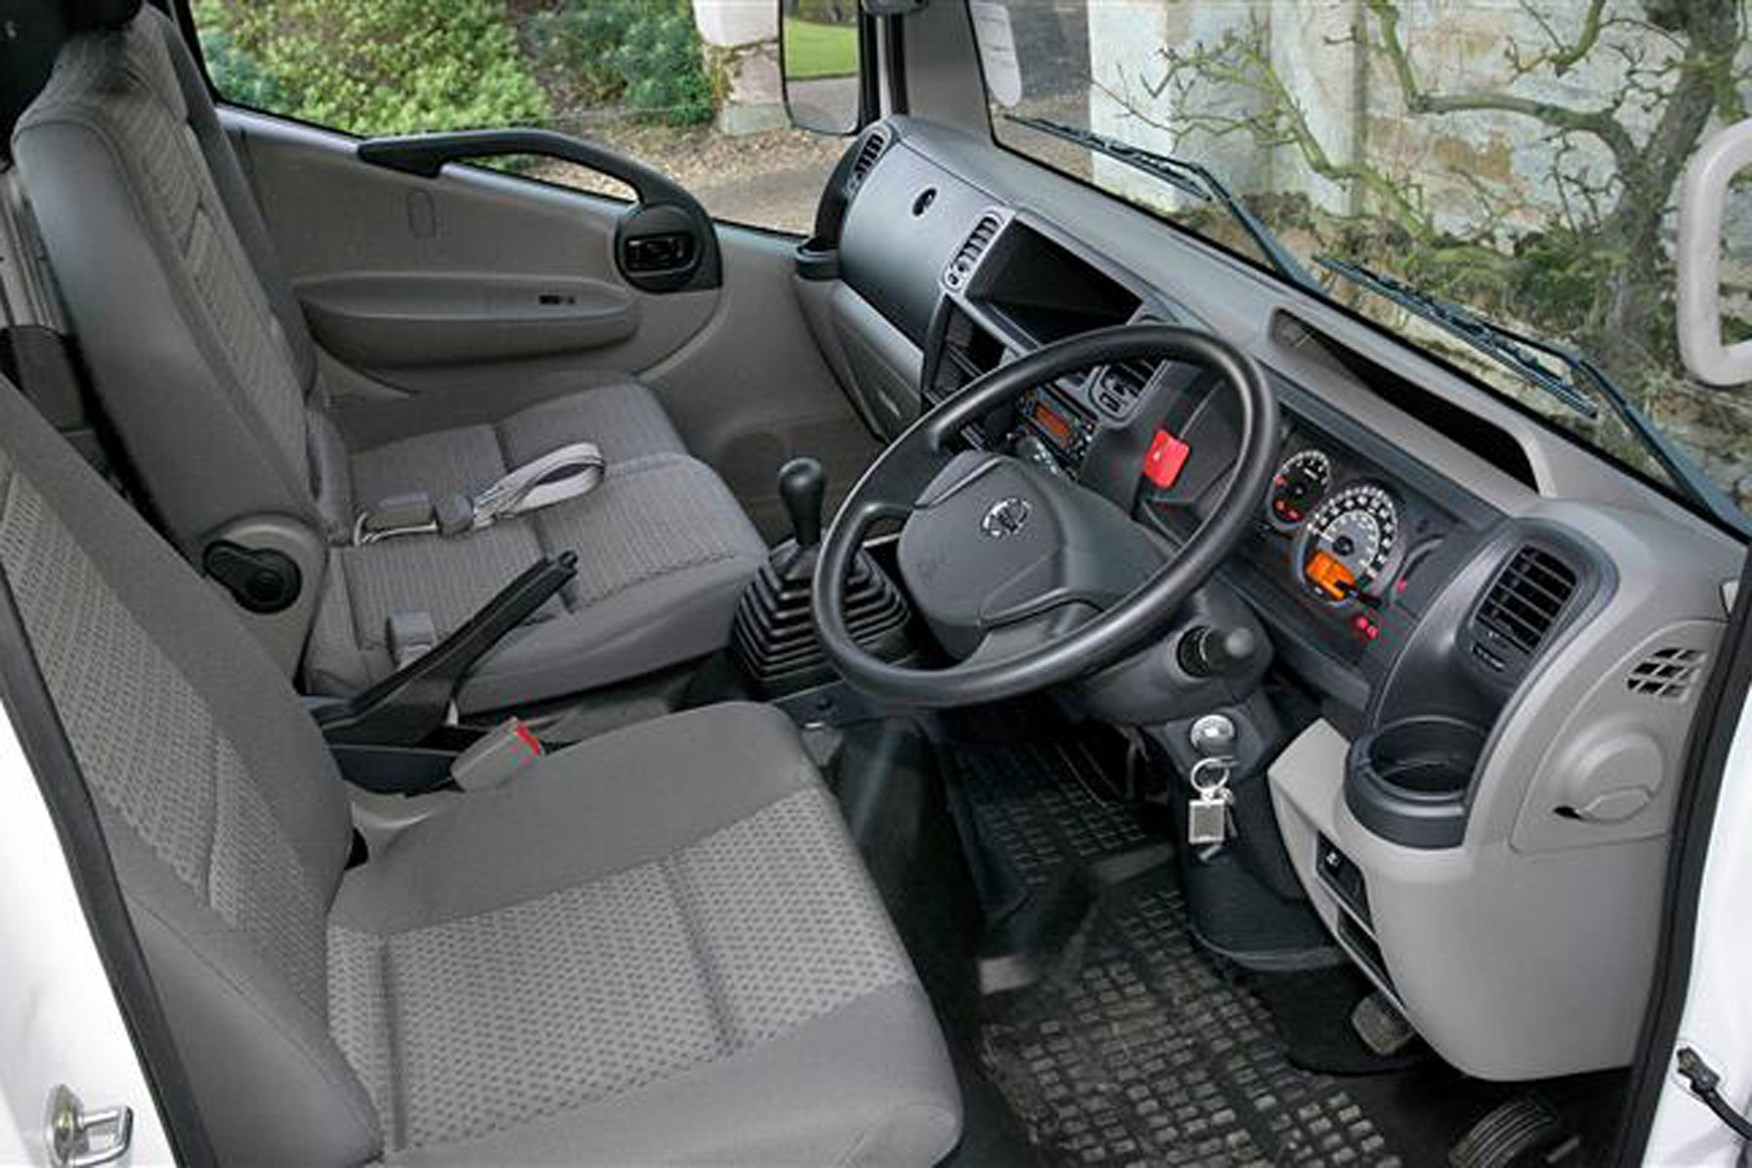 Nissan Cabstar review on Parkers Vans - cabin, interior